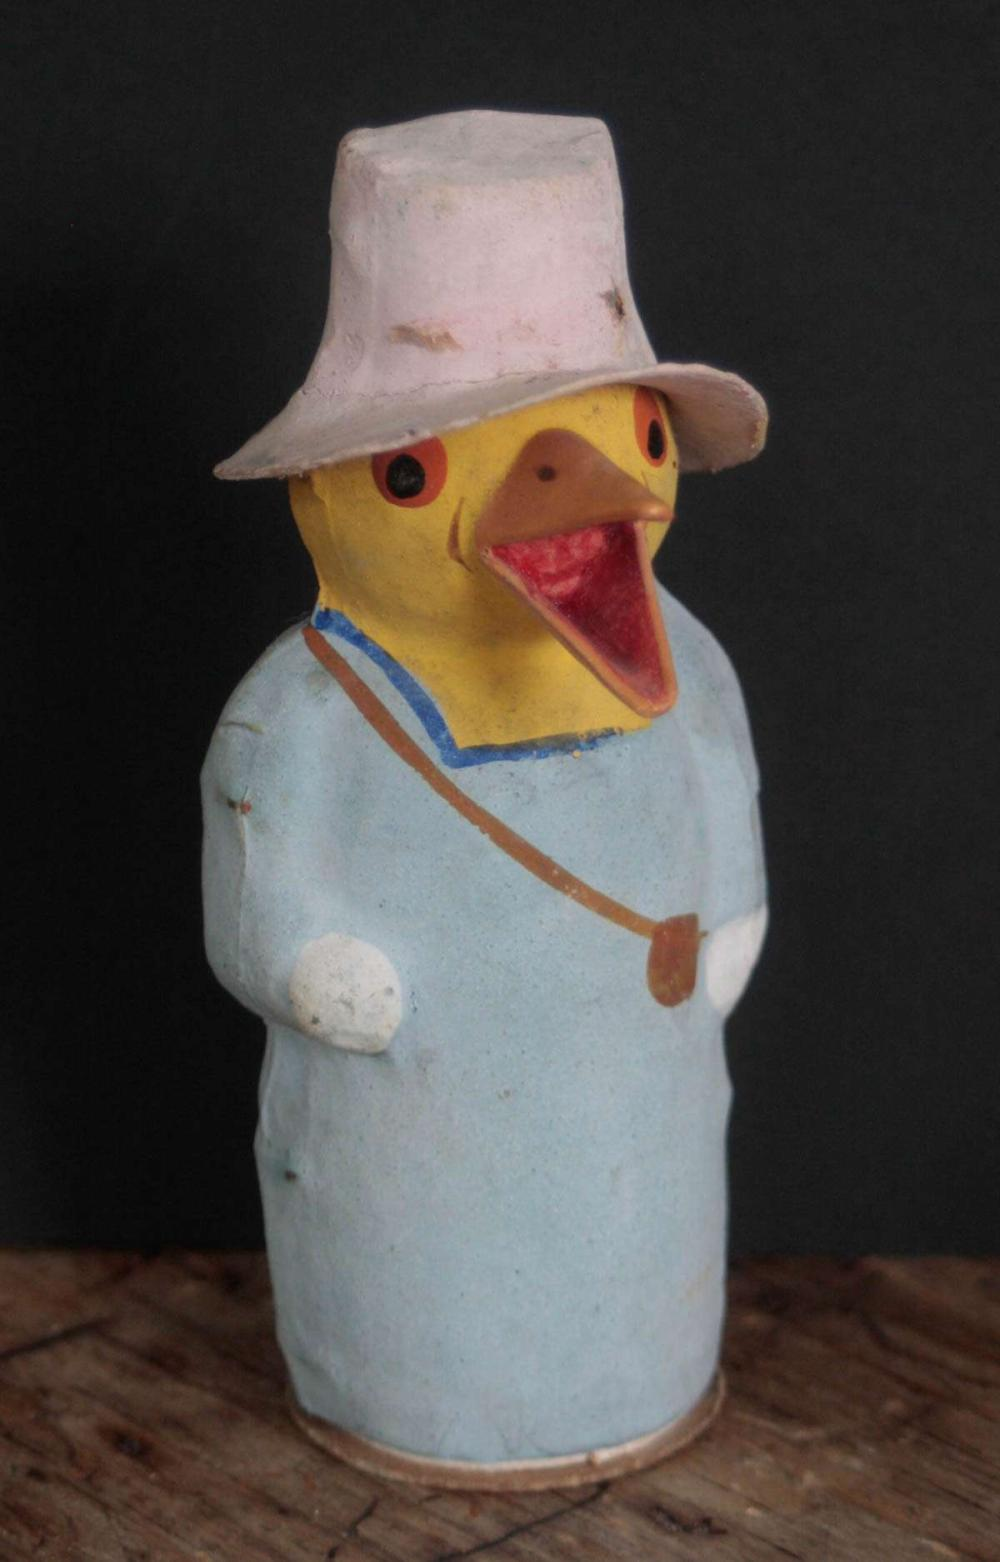 antique candy container shaped like a chicken